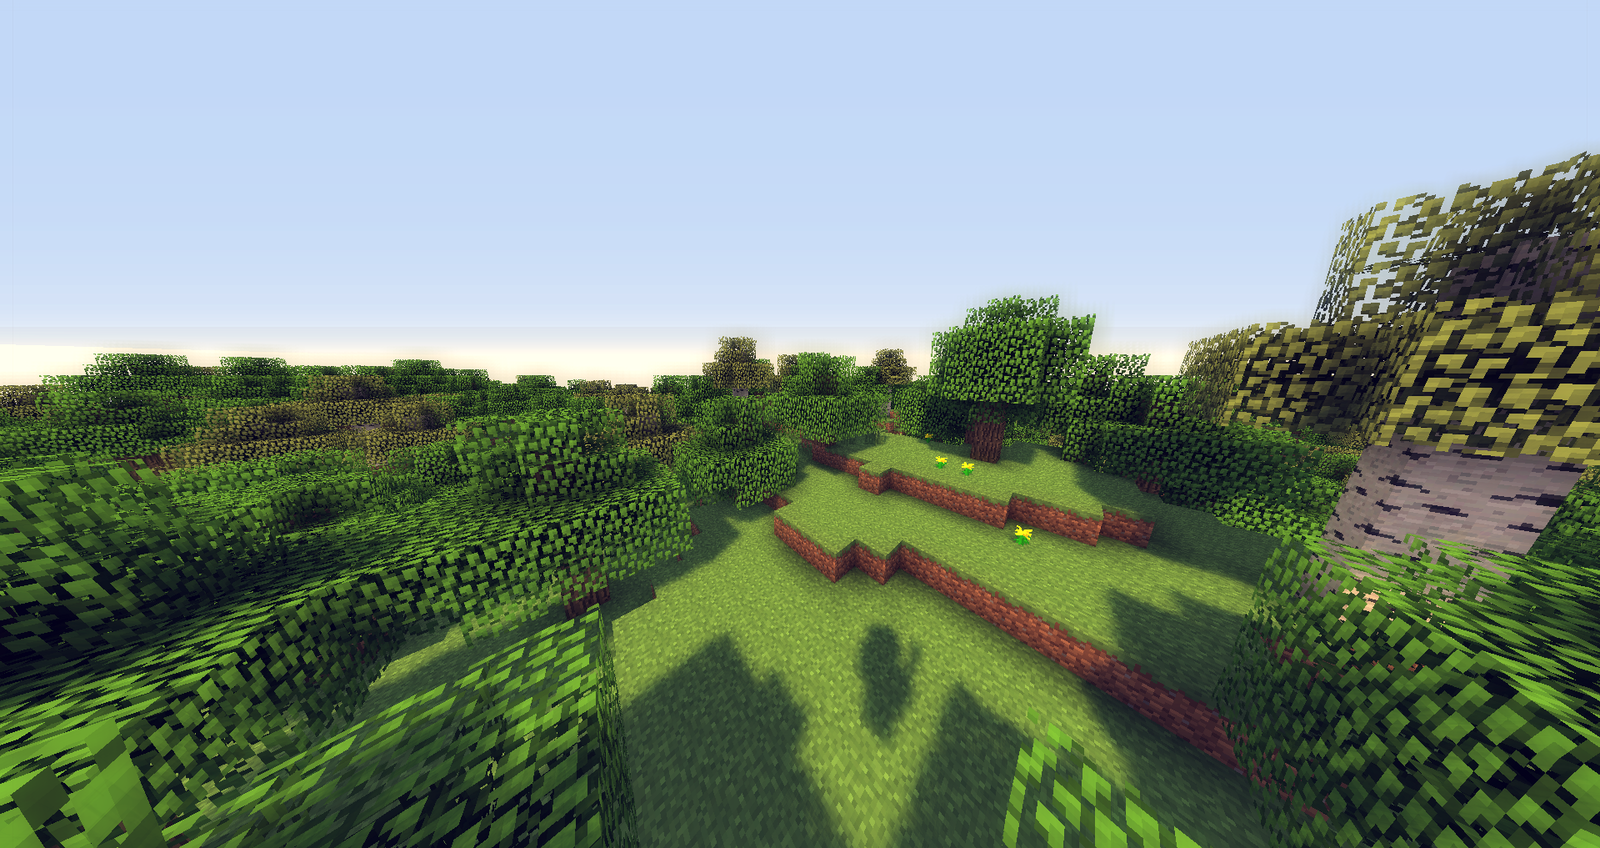 49f6e  90sy [1.10.2] MrMeep x3's Shaders Mod Download